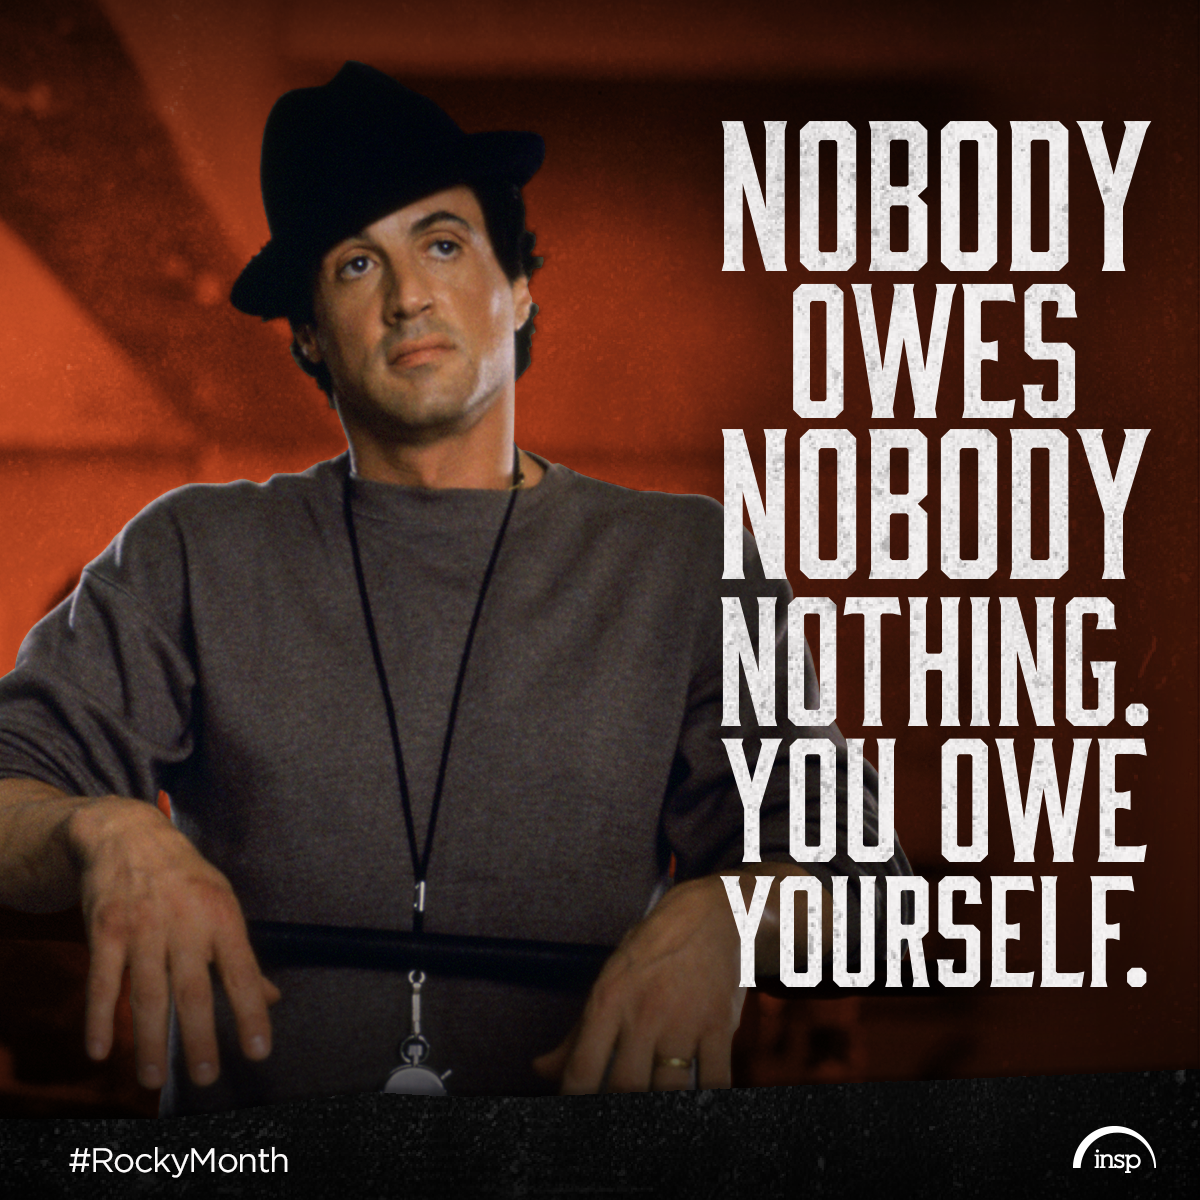 Rocky's Most Inspiring Quotes - INSP TV | TV Shows and Movies